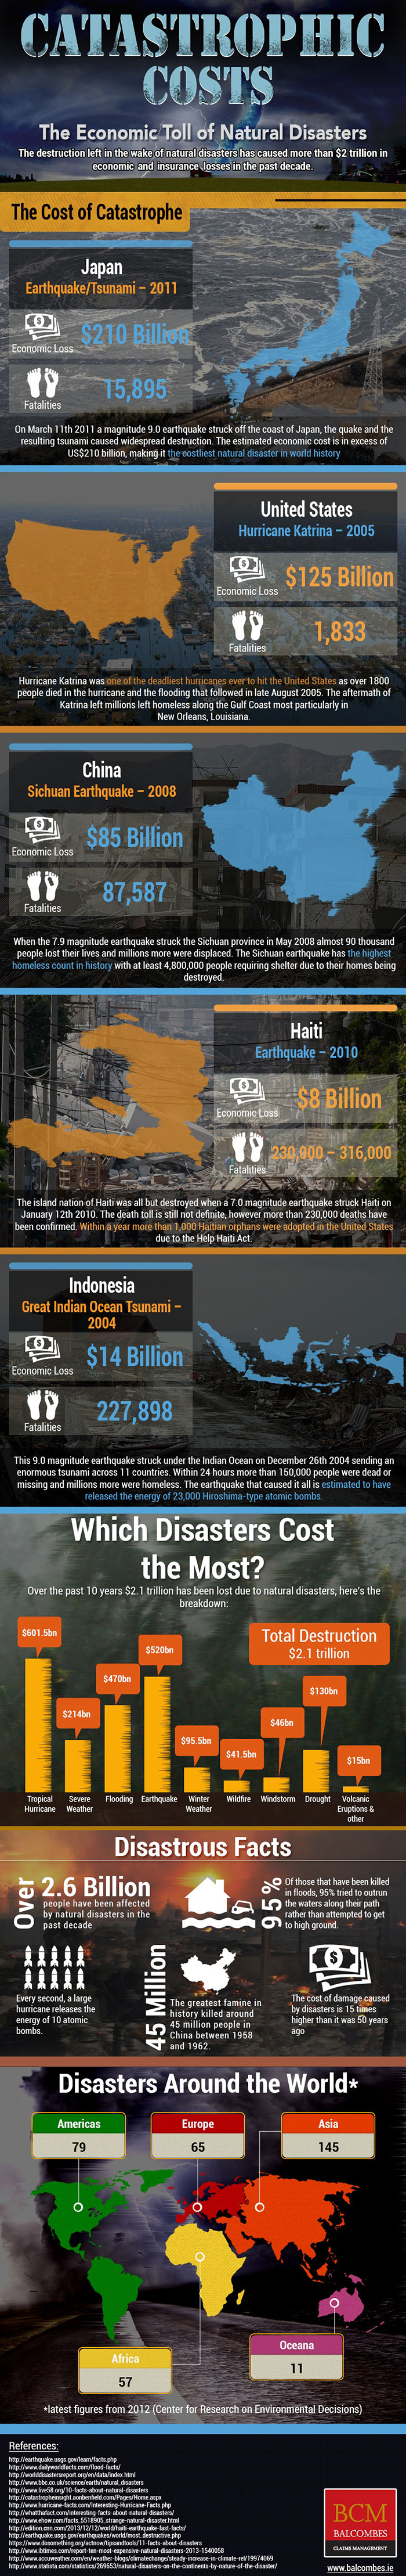 Source: http://www.emergencyvisions.com/catastrophic-costs-economic-toll-natural-disasters/